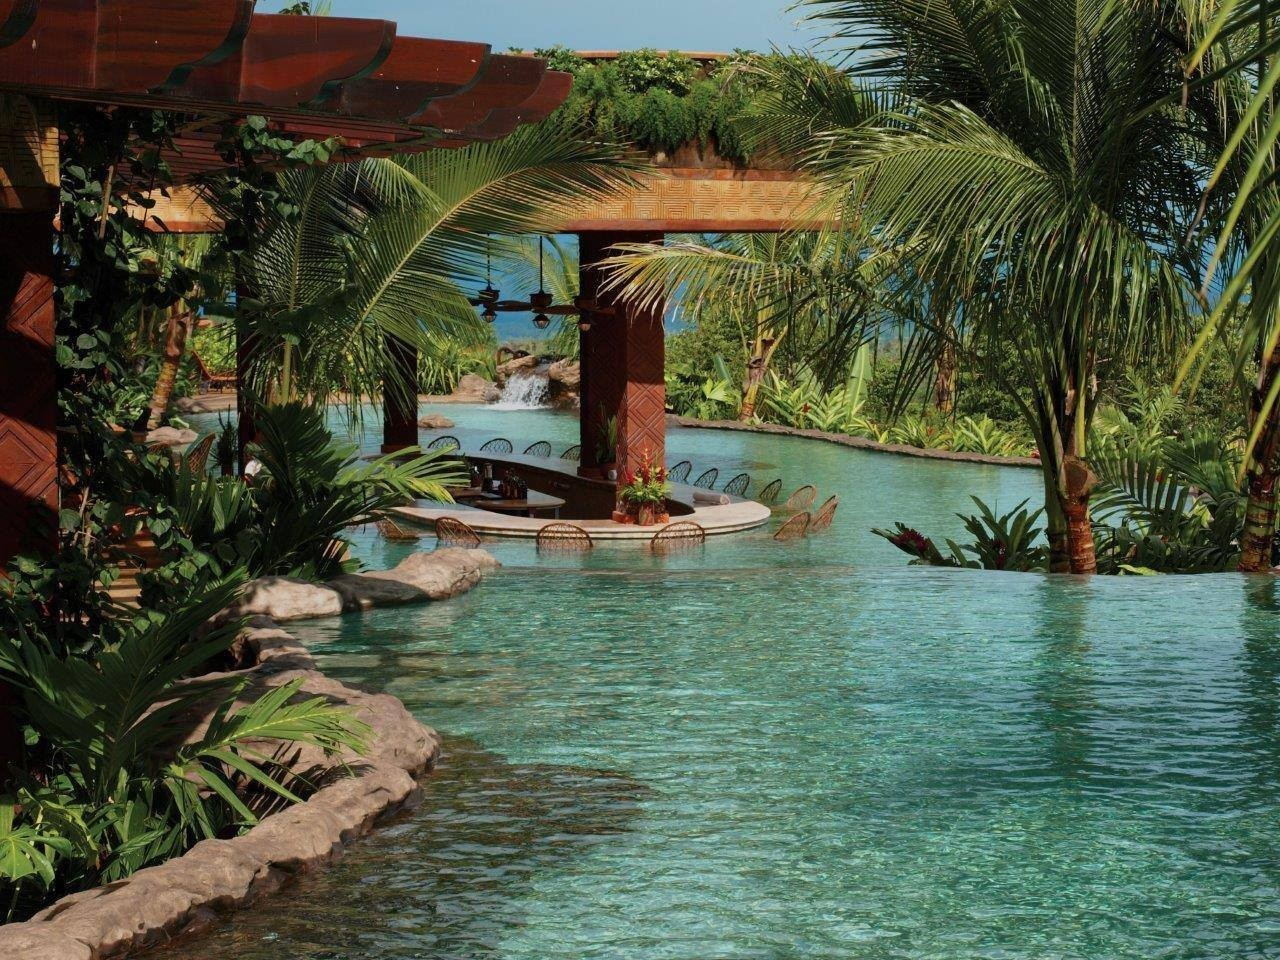 Best hot springs in costa rica secret locations more for Pool design costa rica